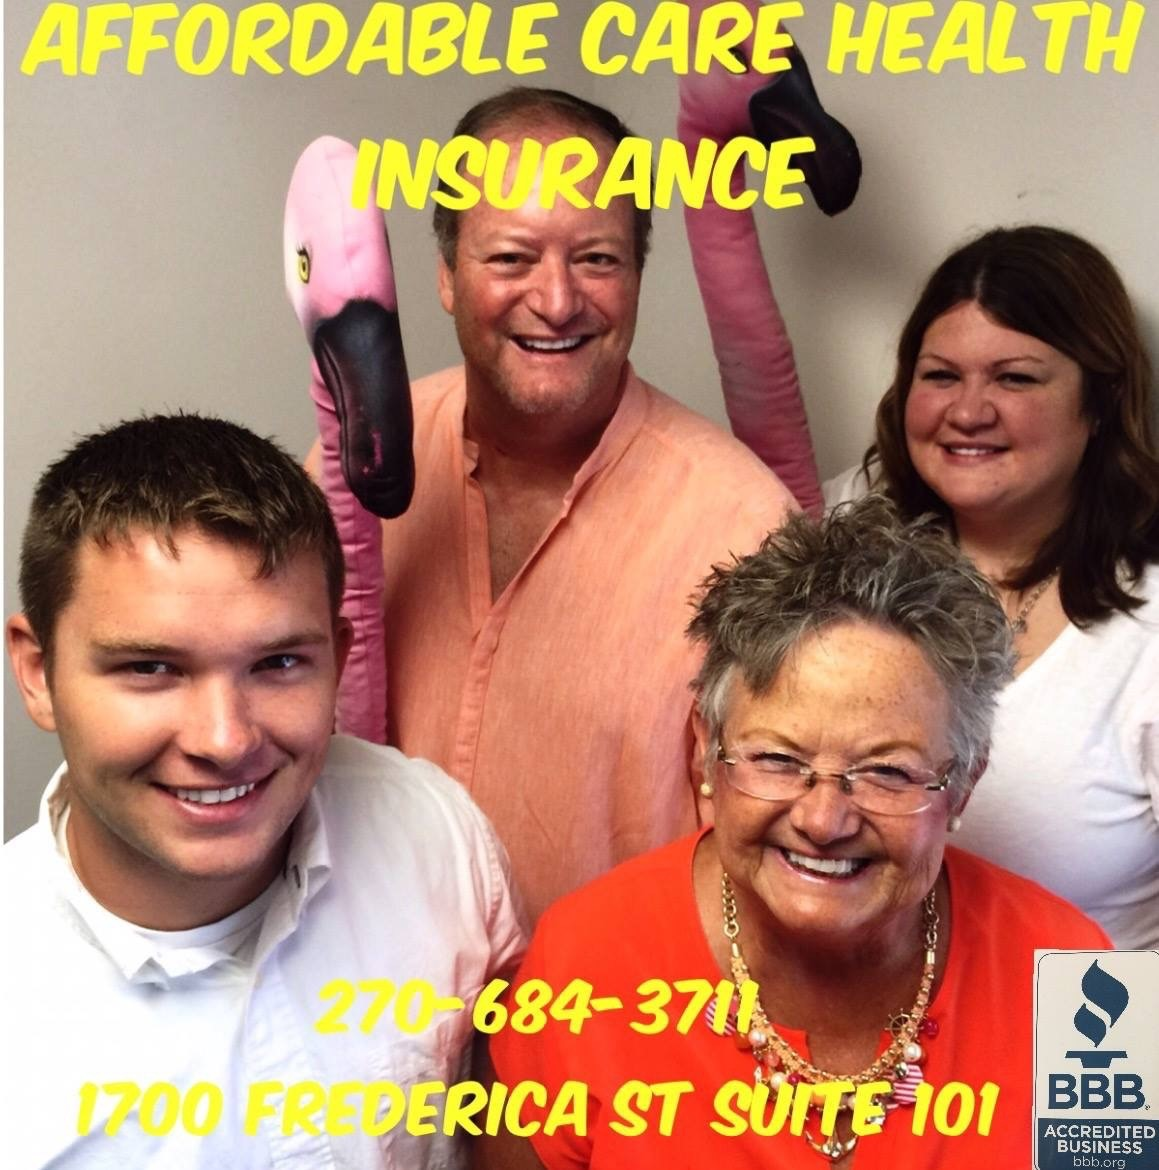 About Affordable Care Insurance